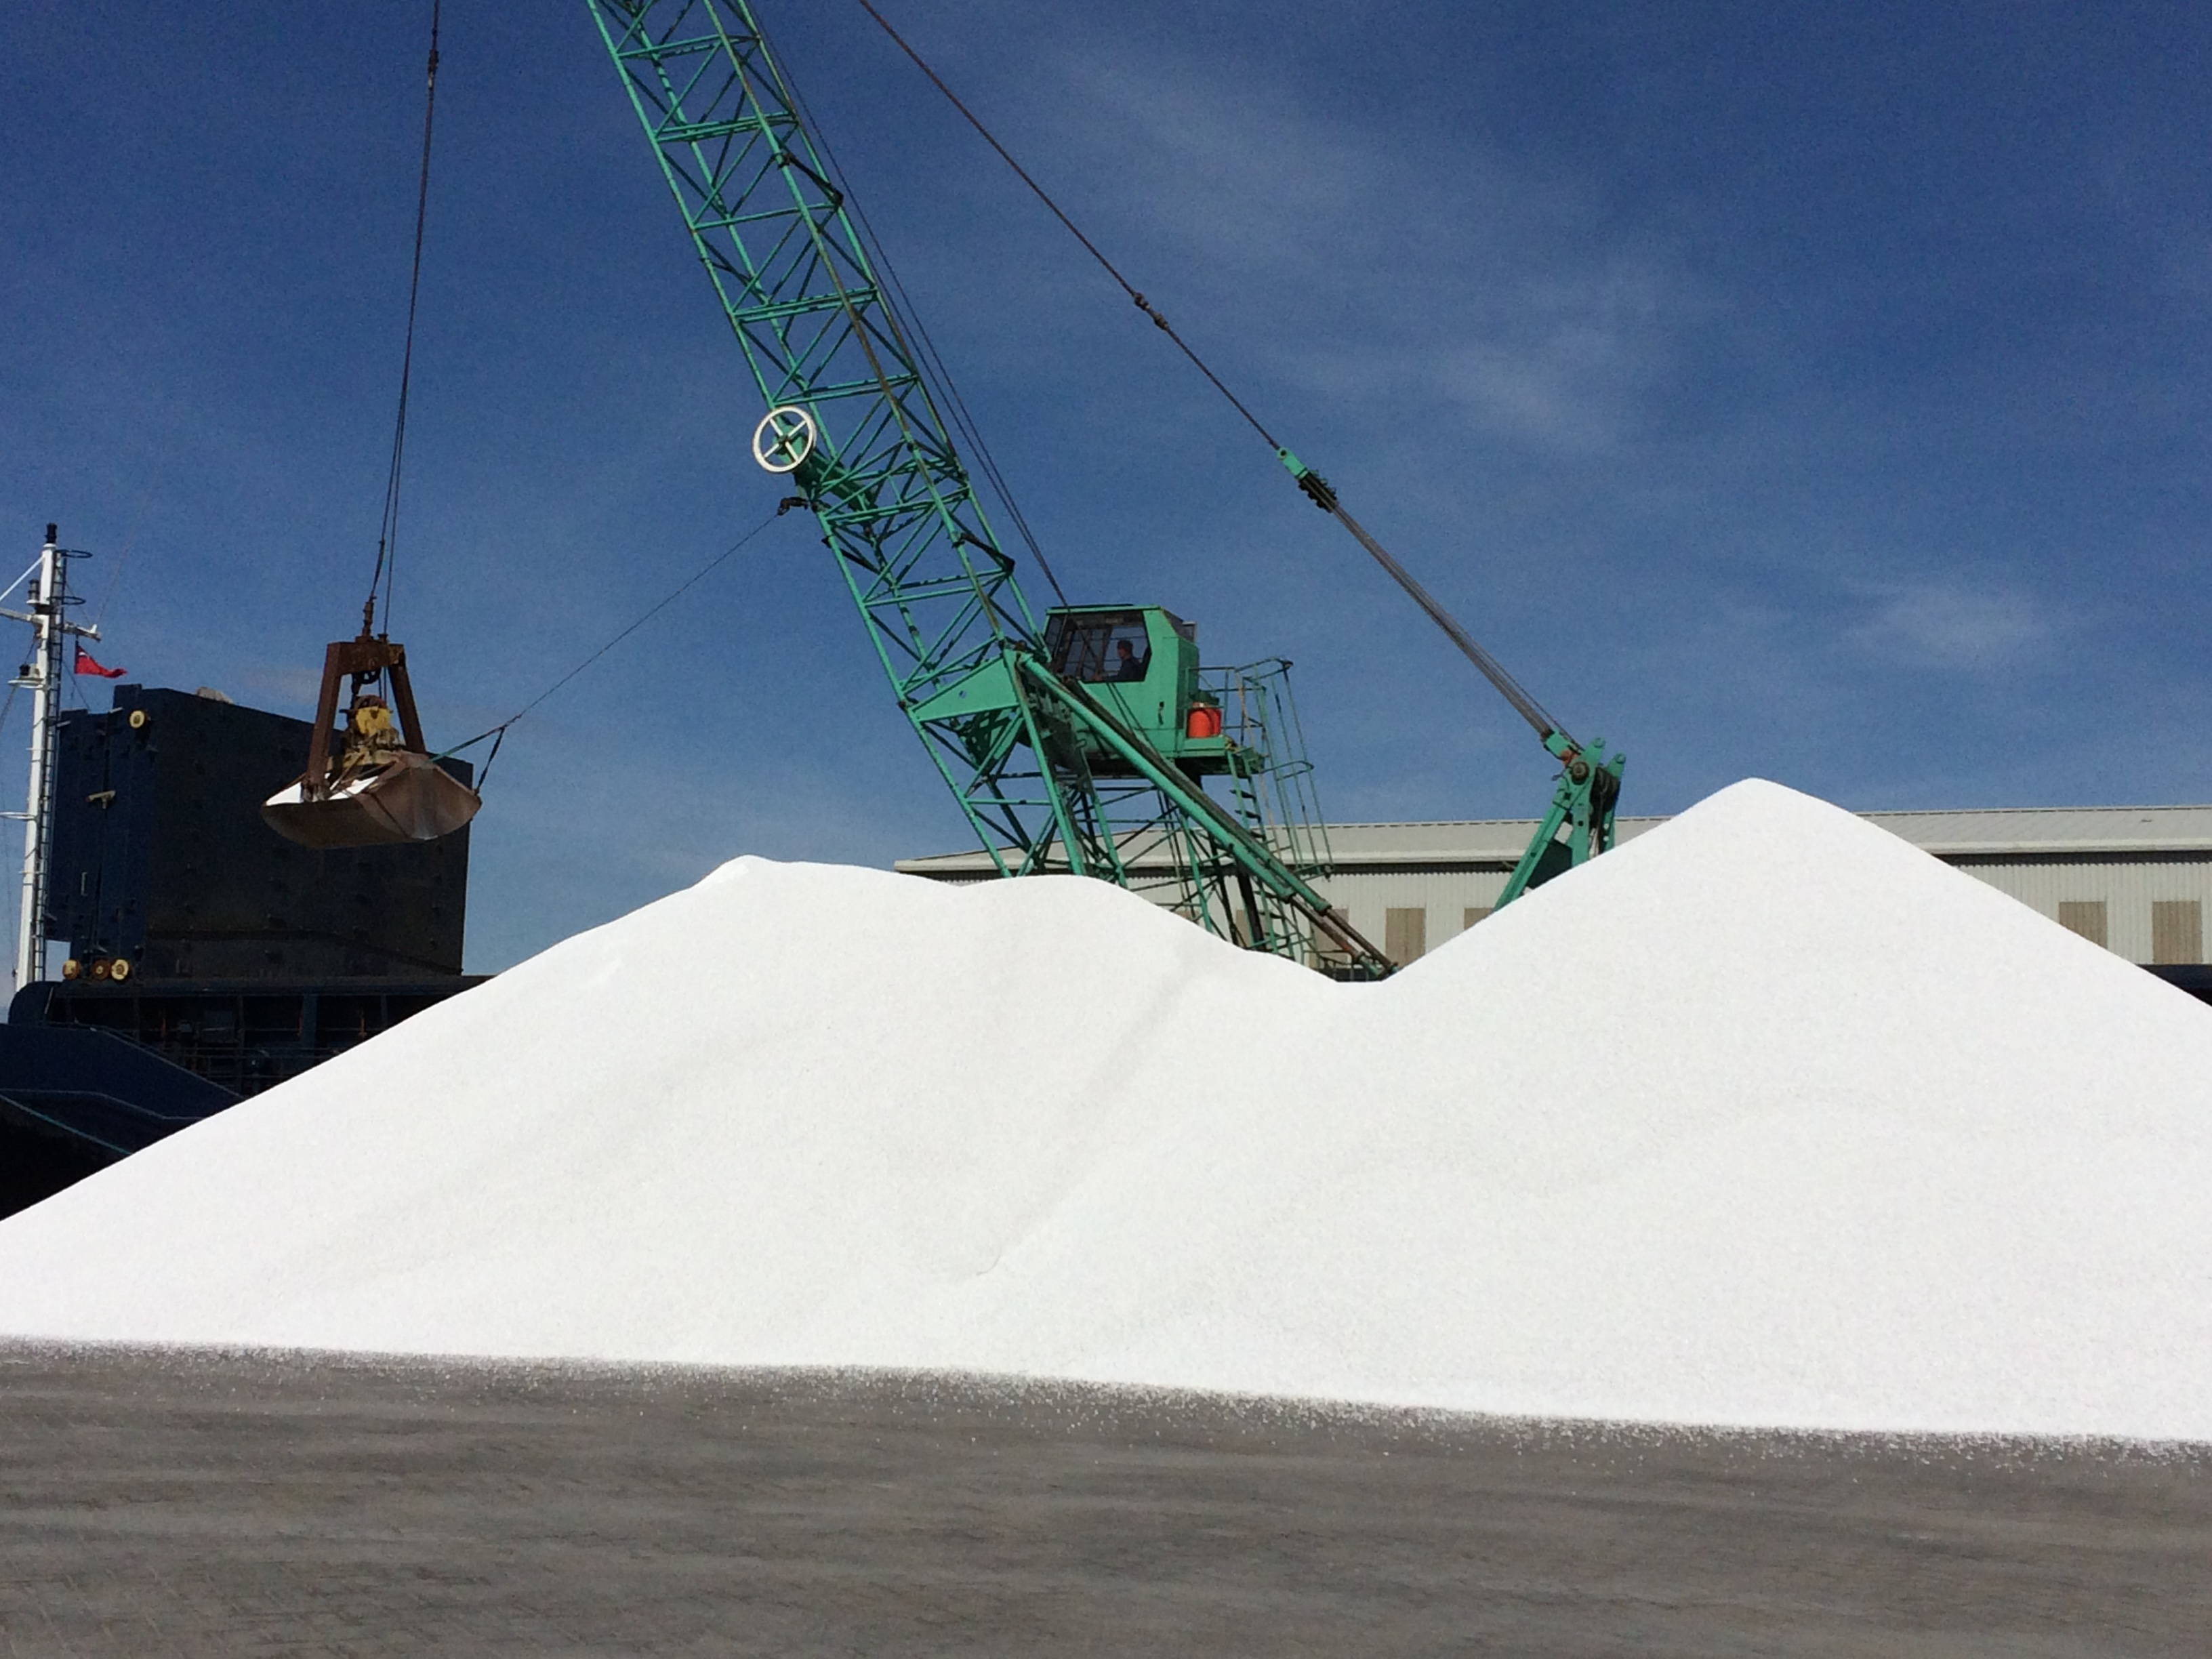 Another load of Essno arriving at the docks